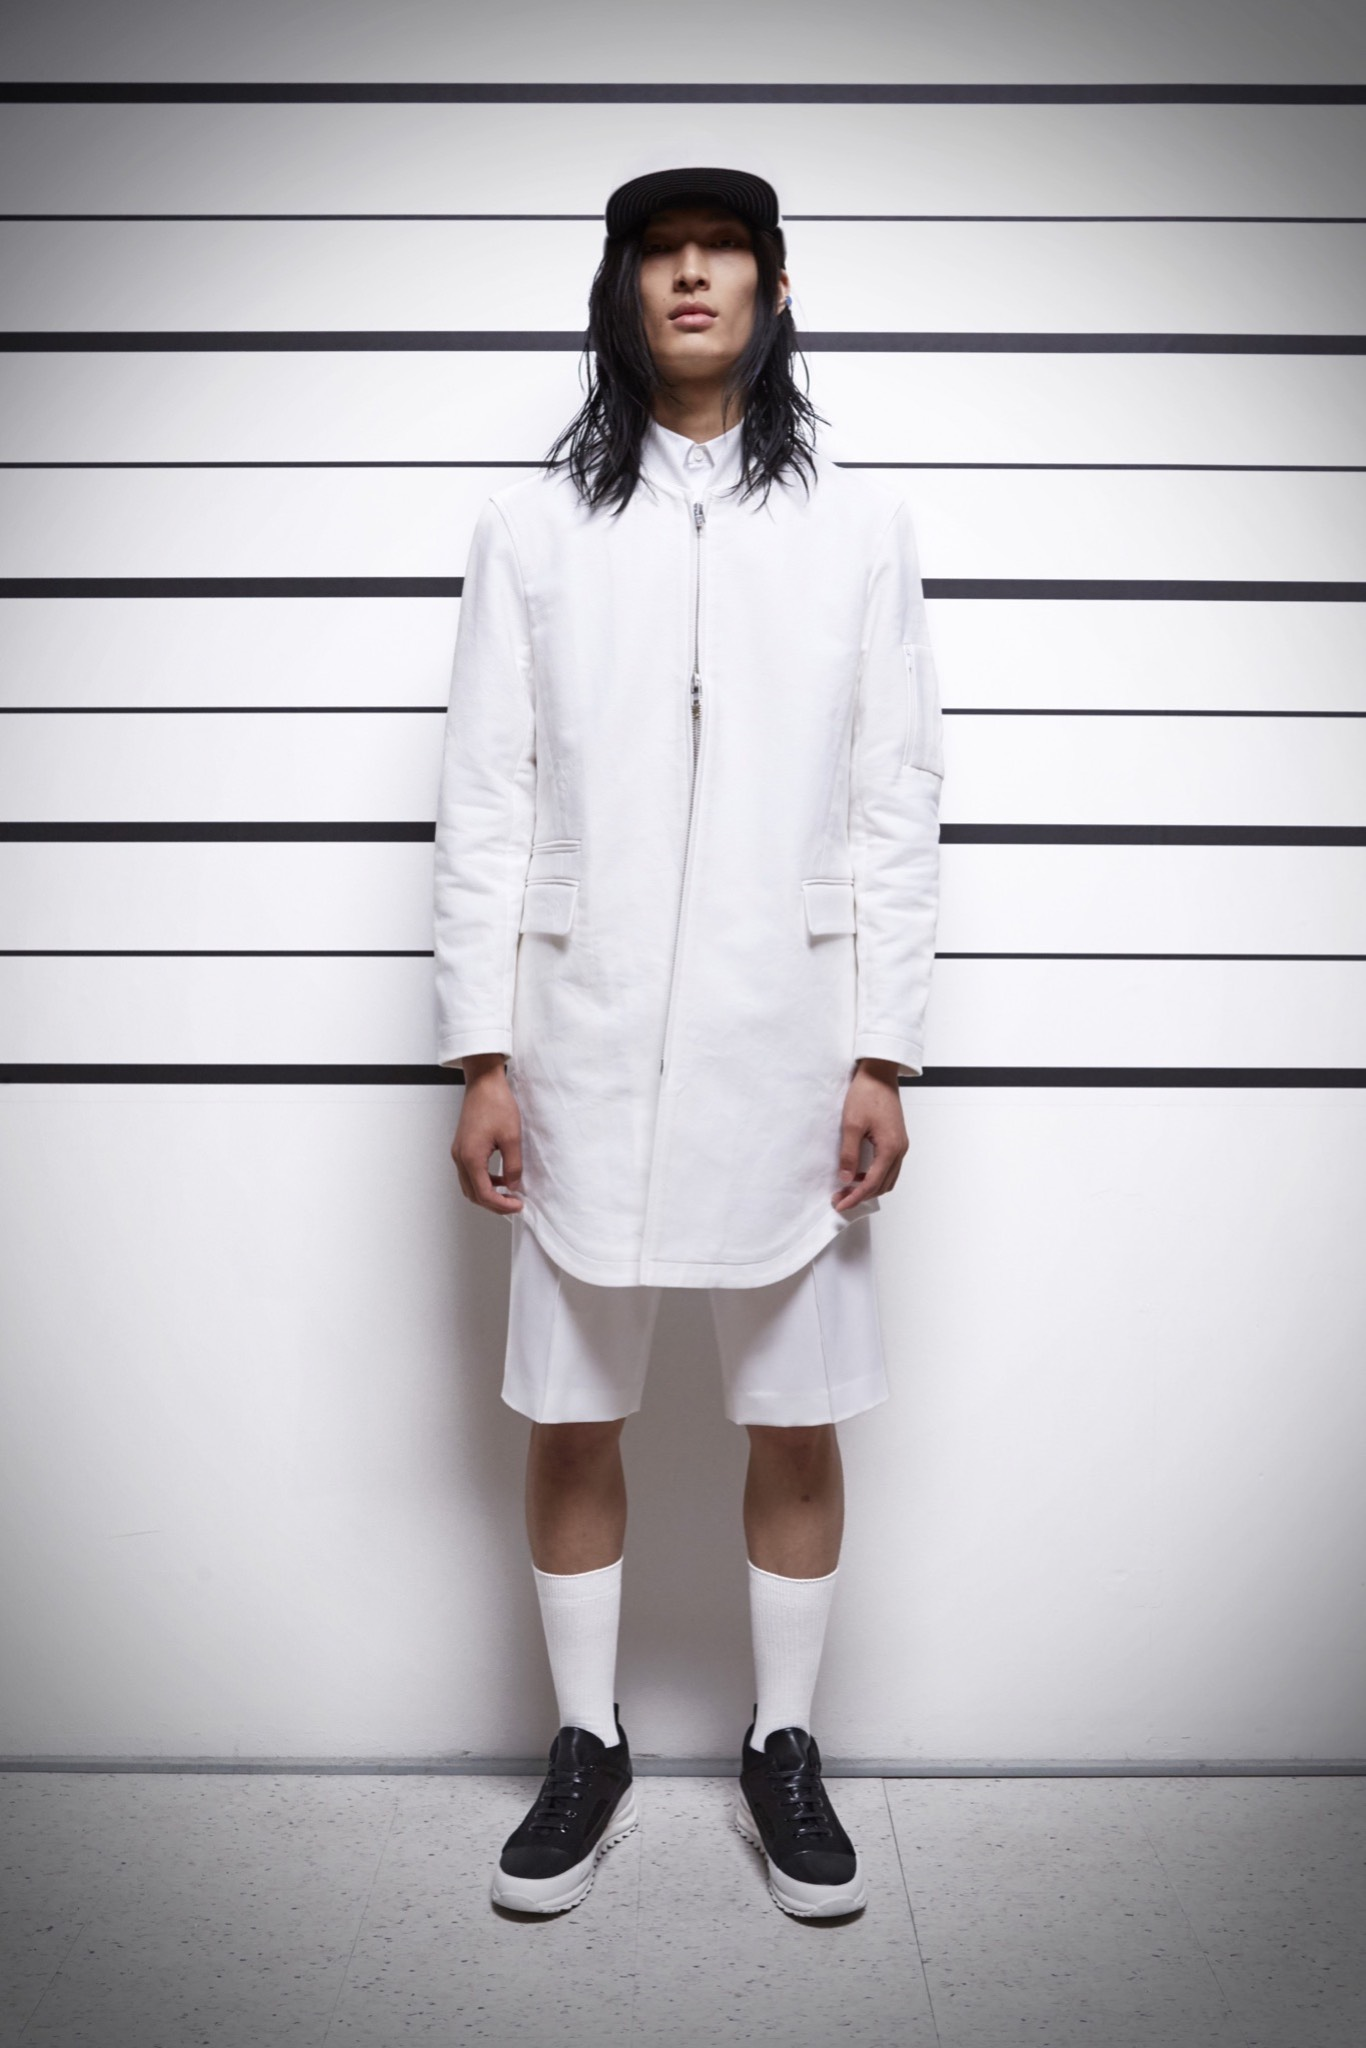 Public School NYC at NYFWM SS16 on thekentuckygent.com.